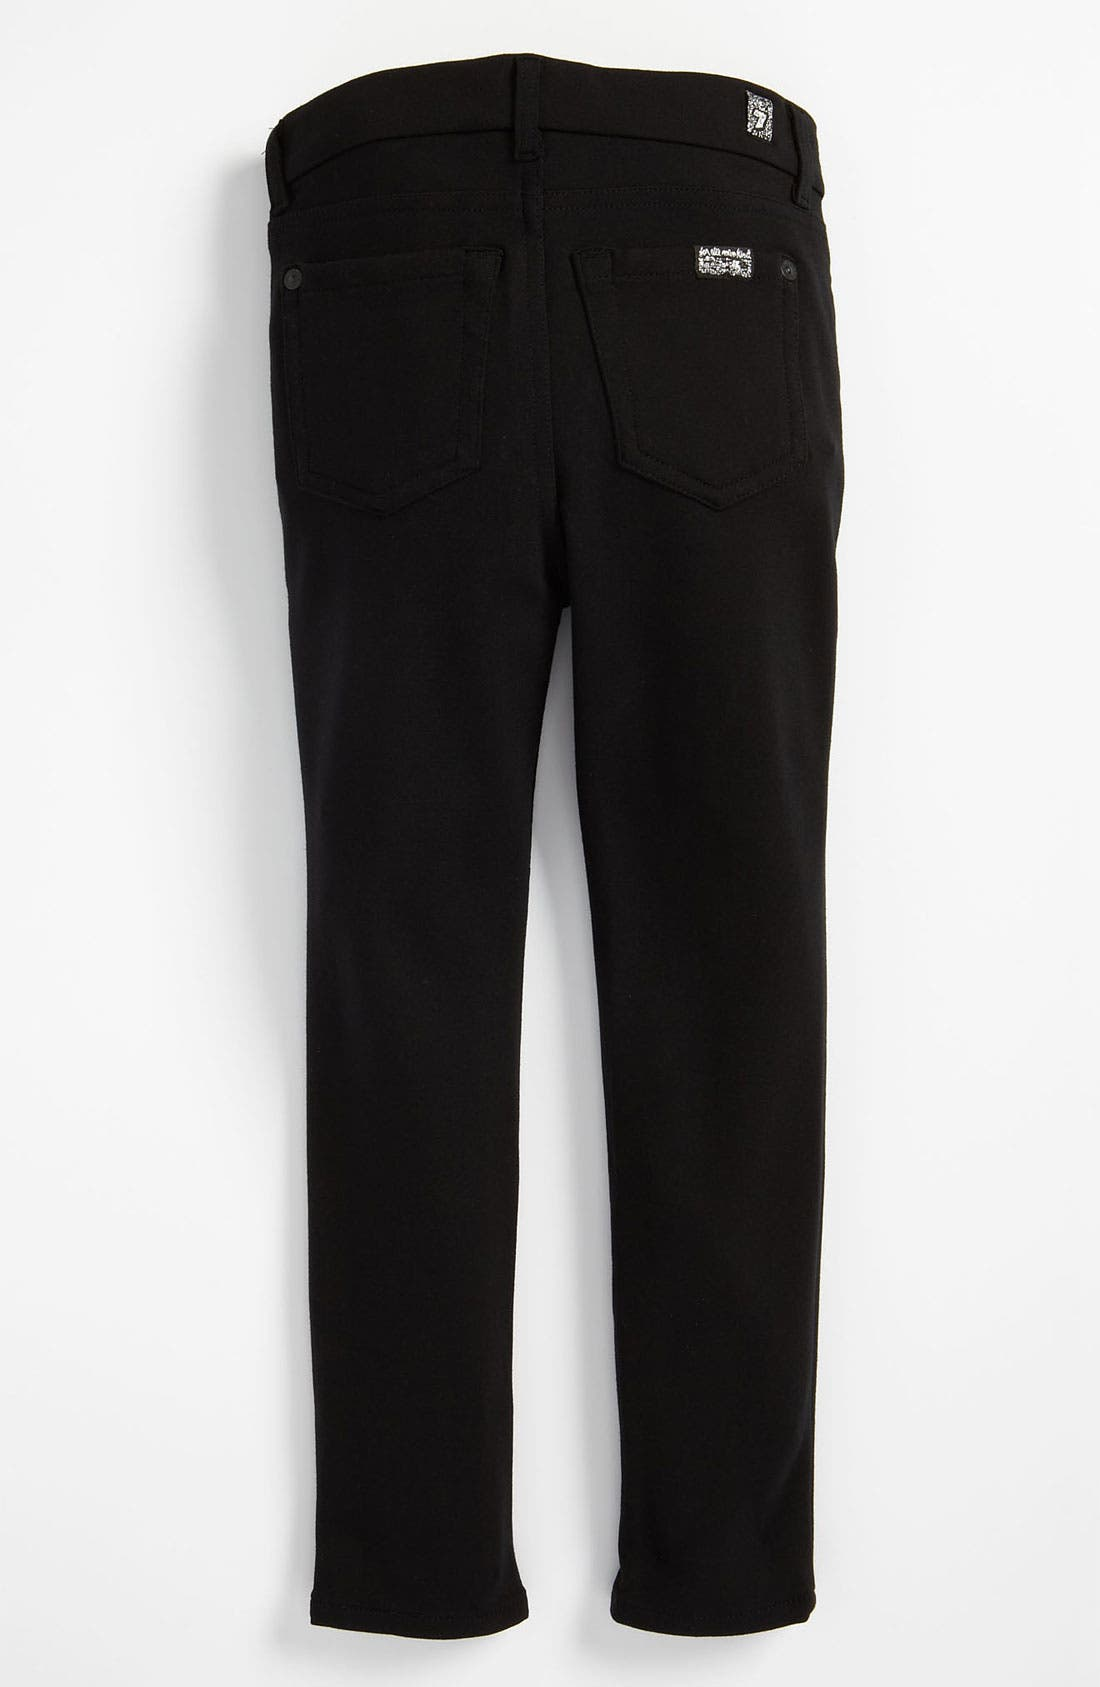 Main Image - 7 For All Mankind® Ponte Knit Pants (Big Girls)